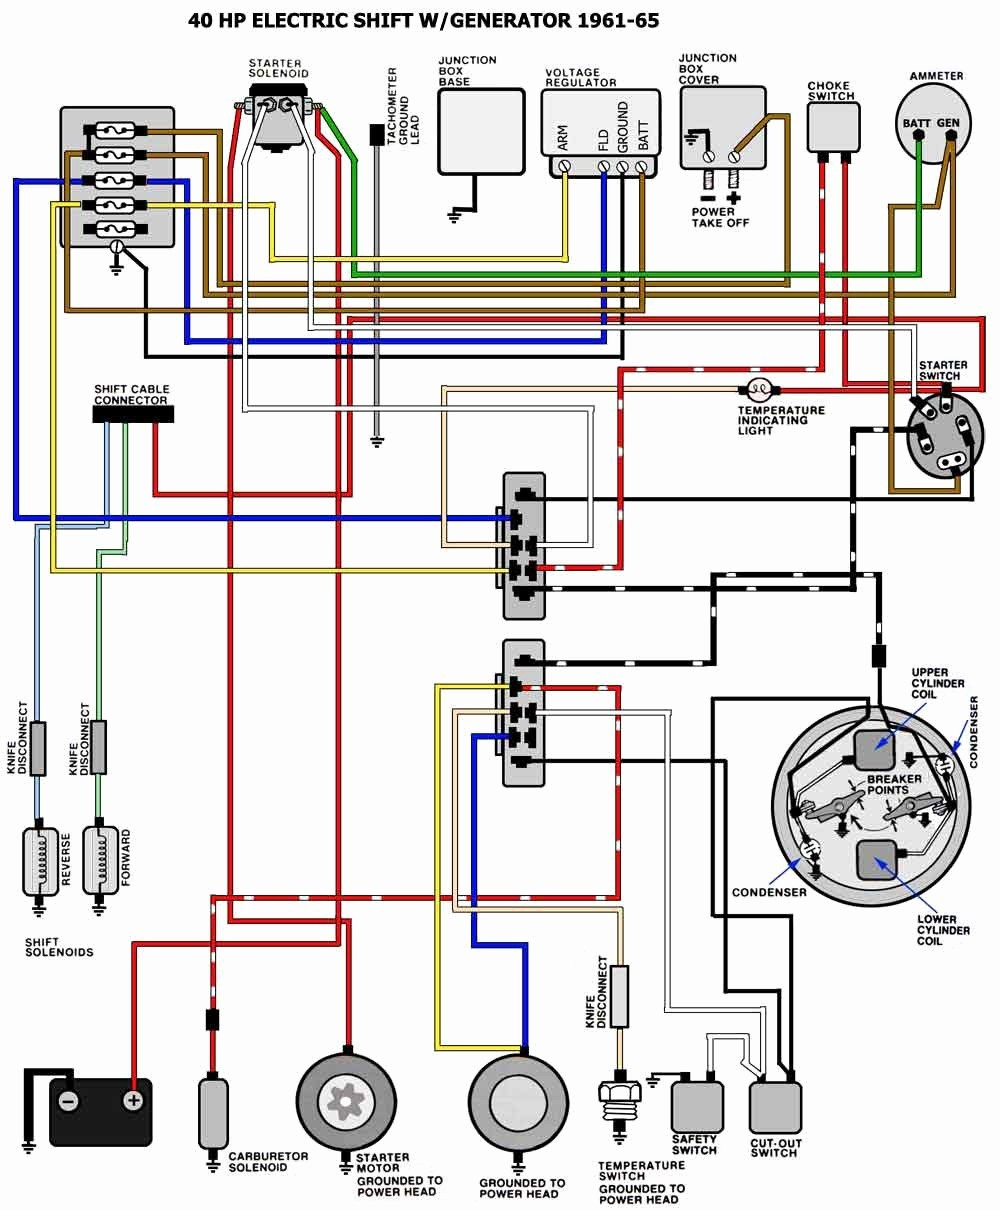 40 Hp Mercury Outboard Wiring Diagram Moreover Johnson Outboard